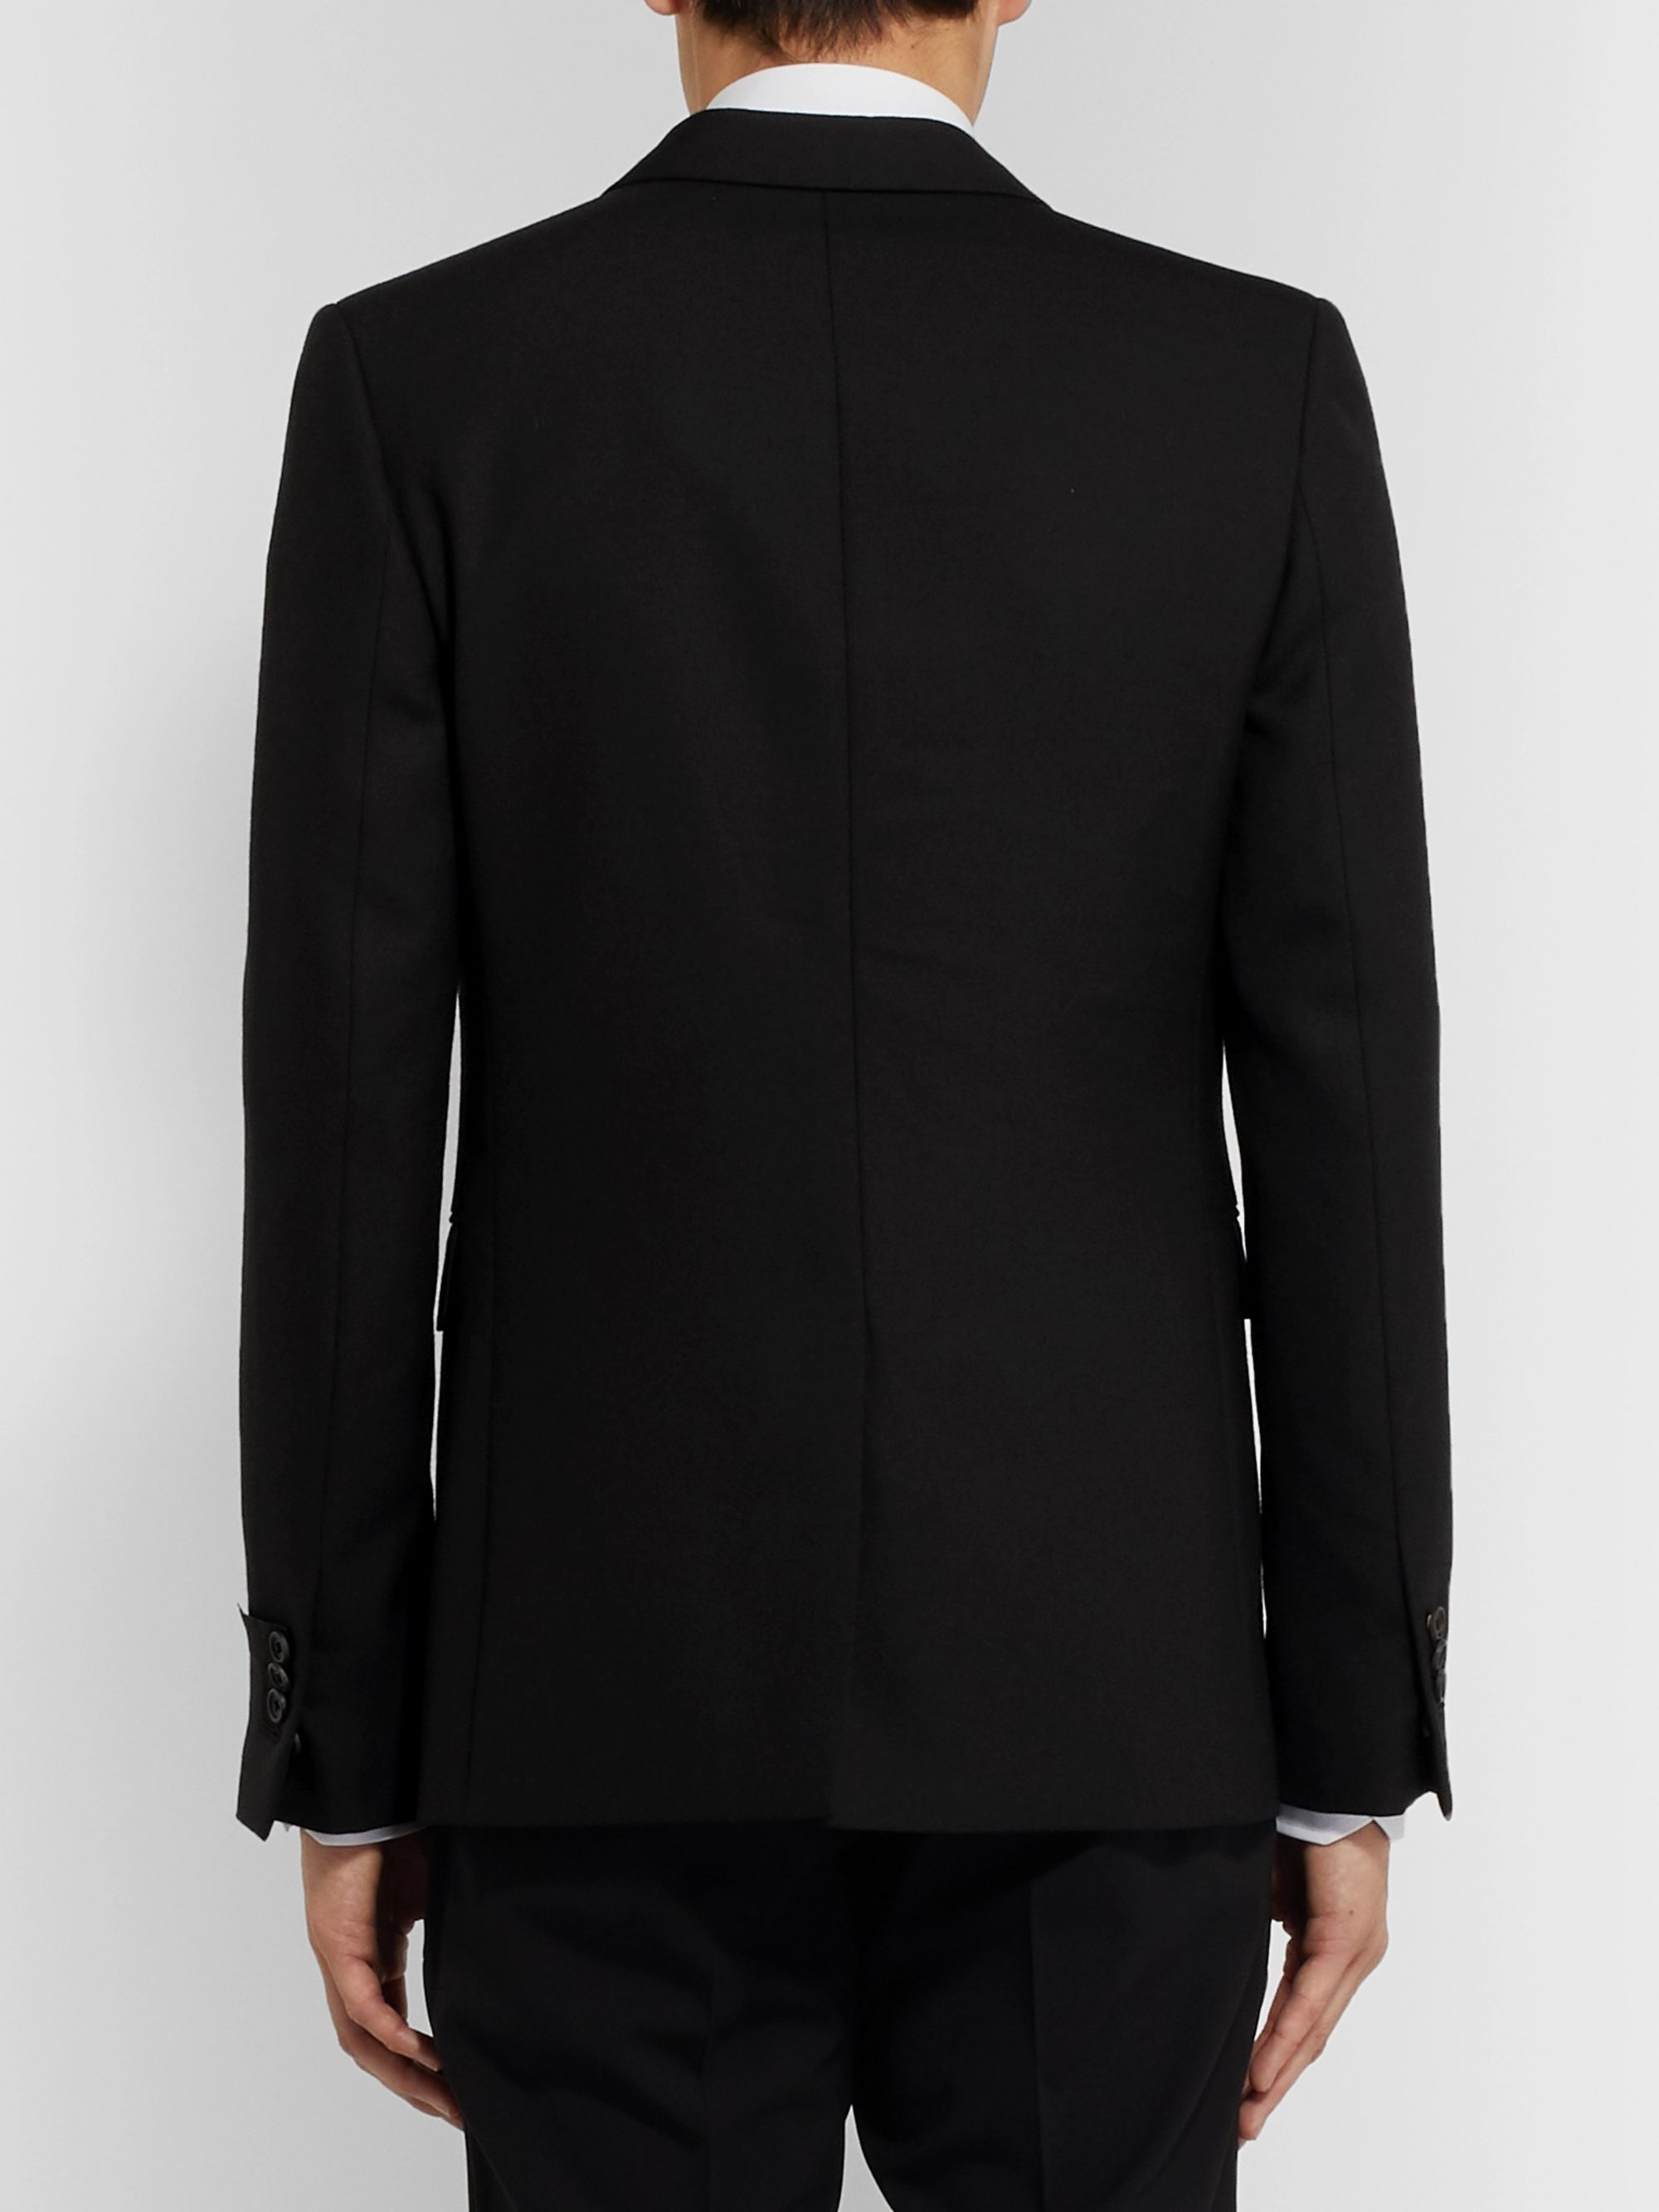 Fendi Black Slim-Fit Woven Suit Jacket